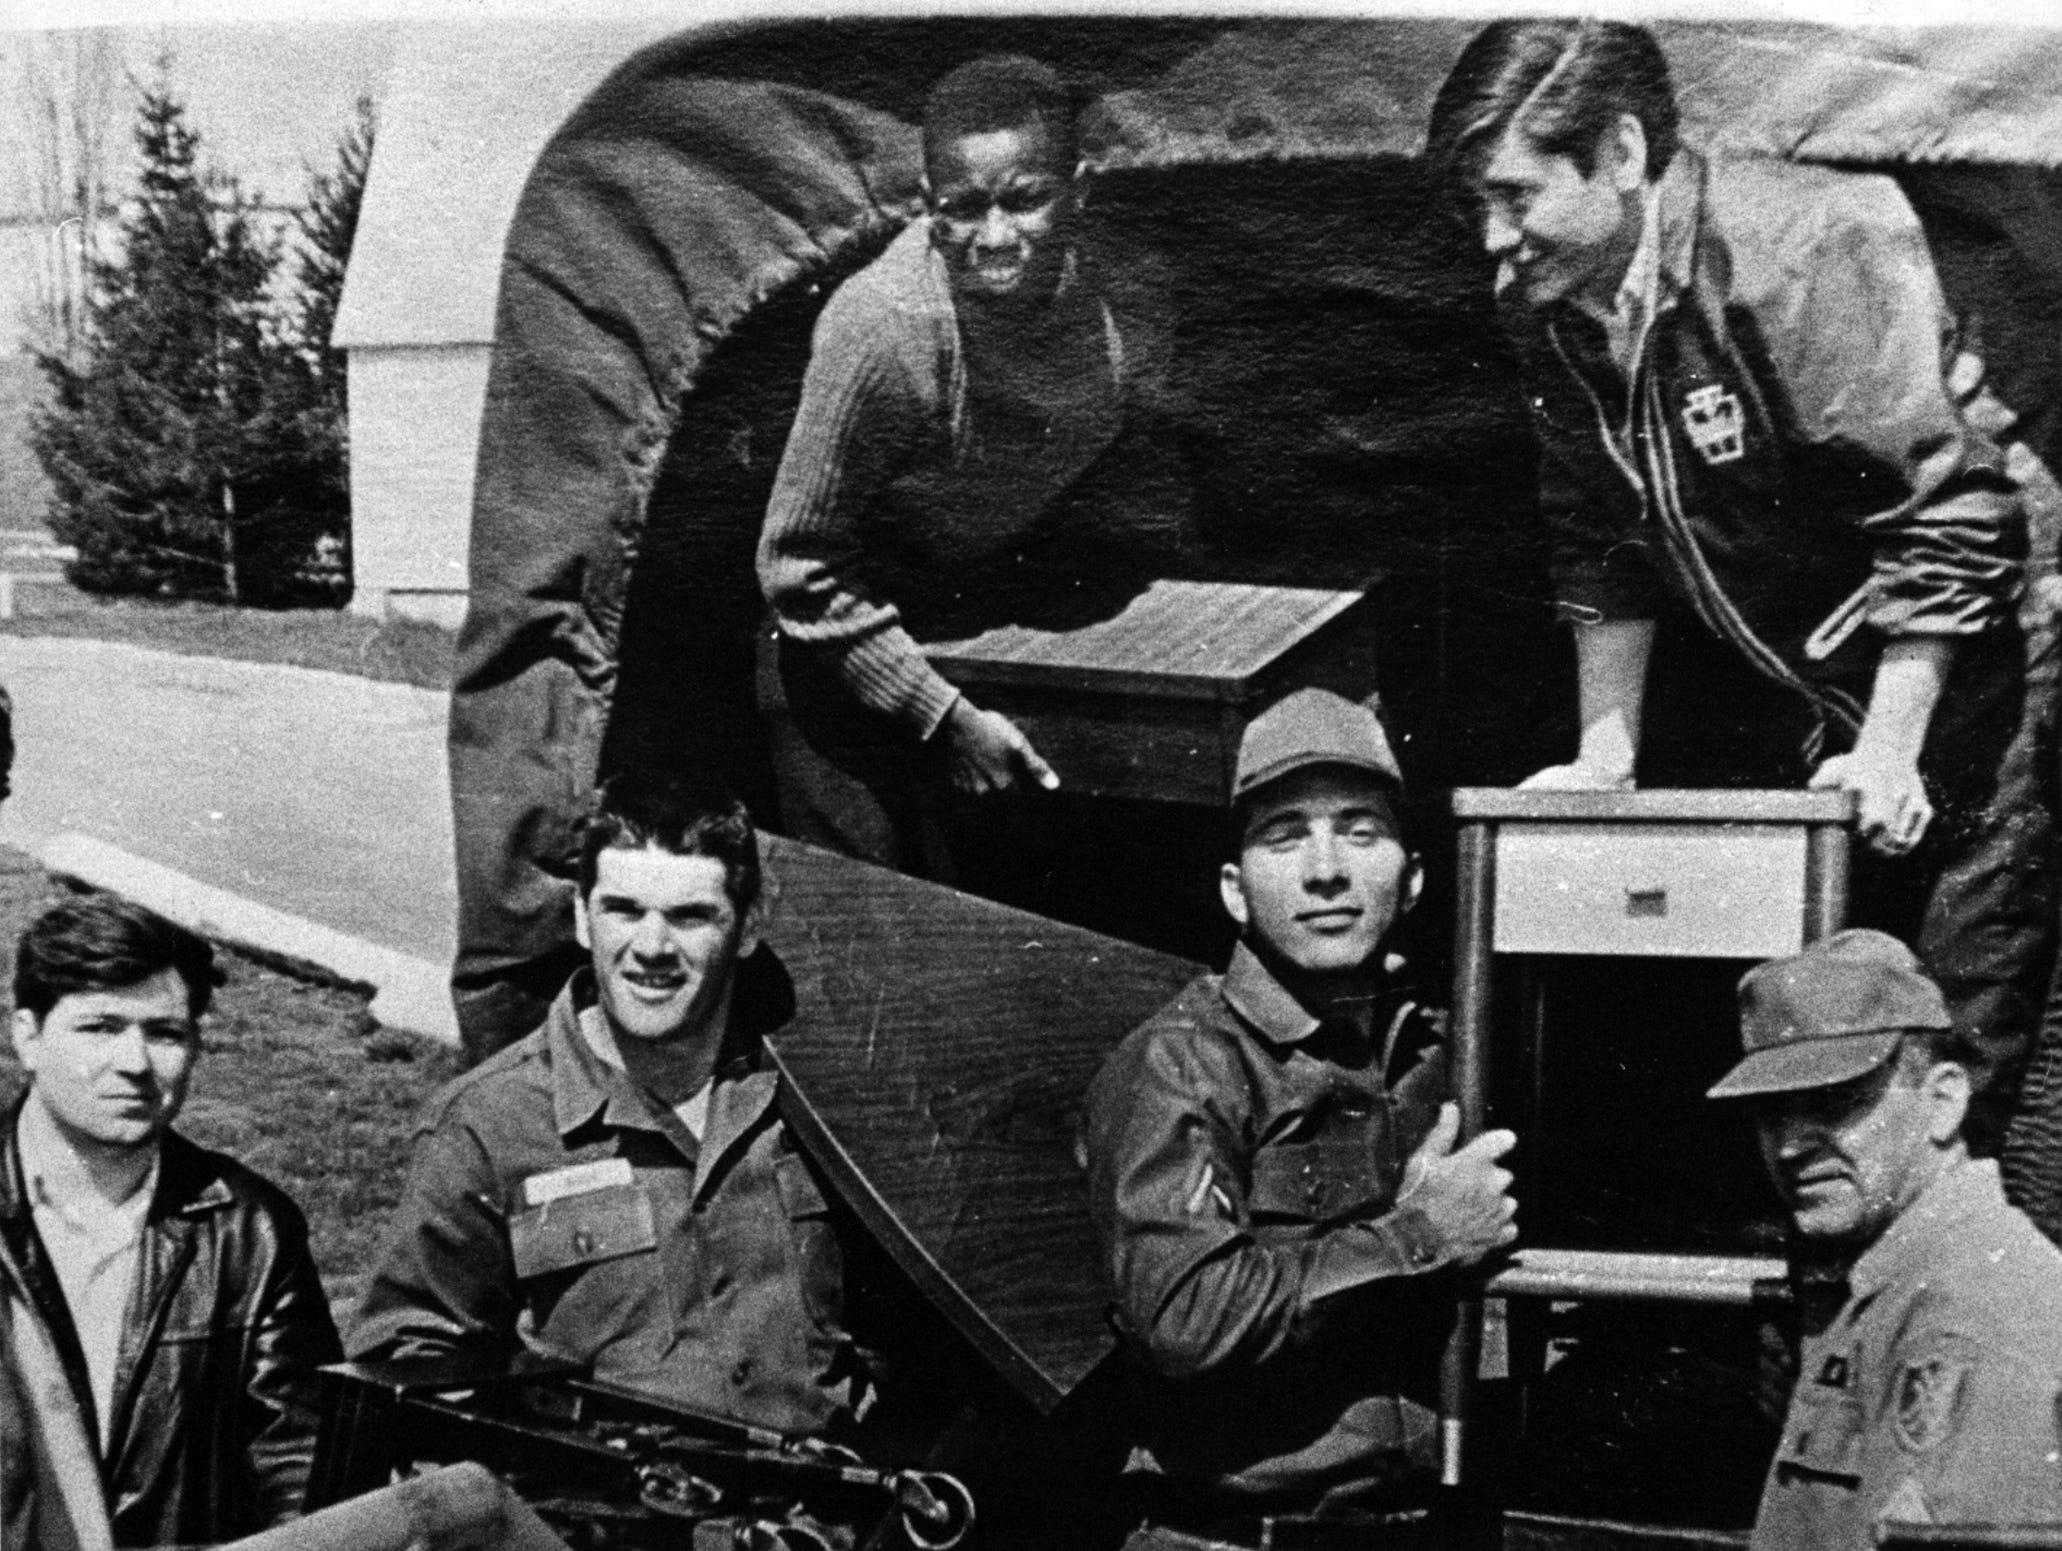 PHOTO TAKEN SOMETIME AROUND 1969 OR 1967: Pete Rose, second from left, and Johnny Bench, third from left, unload furniture while on duty with the Army Reserves in Fort Thomas, Ky. The Enquirer/Allan Kain scanned August 18, 2010